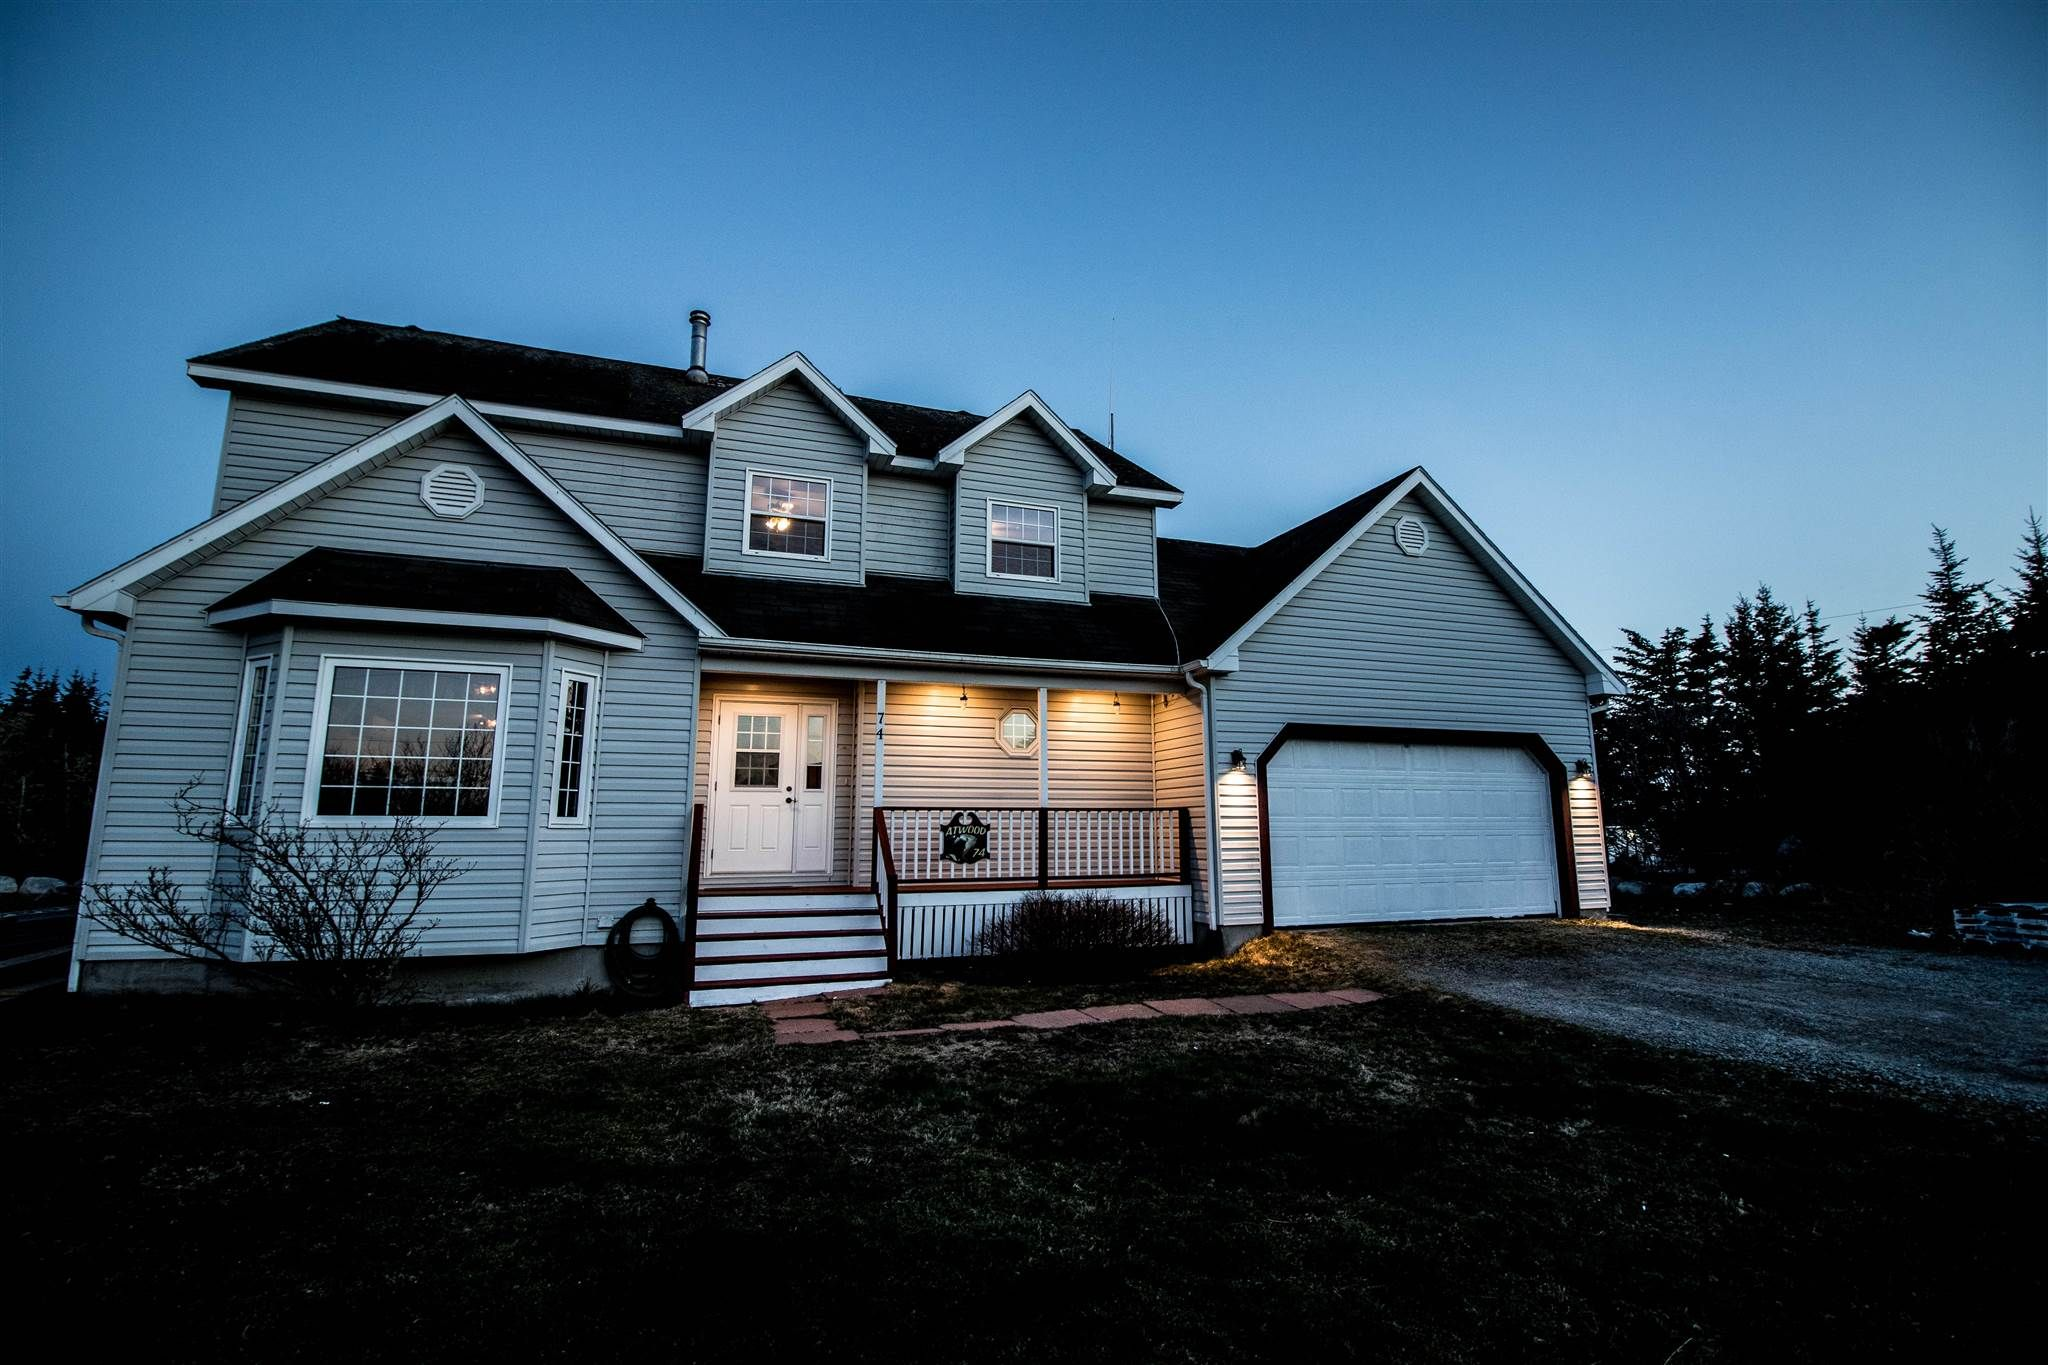 Main Photo: 74 Woodland Street in Clark's Harbour: 407-Shelburne County Residential for sale (South Shore)  : MLS®# 202109109